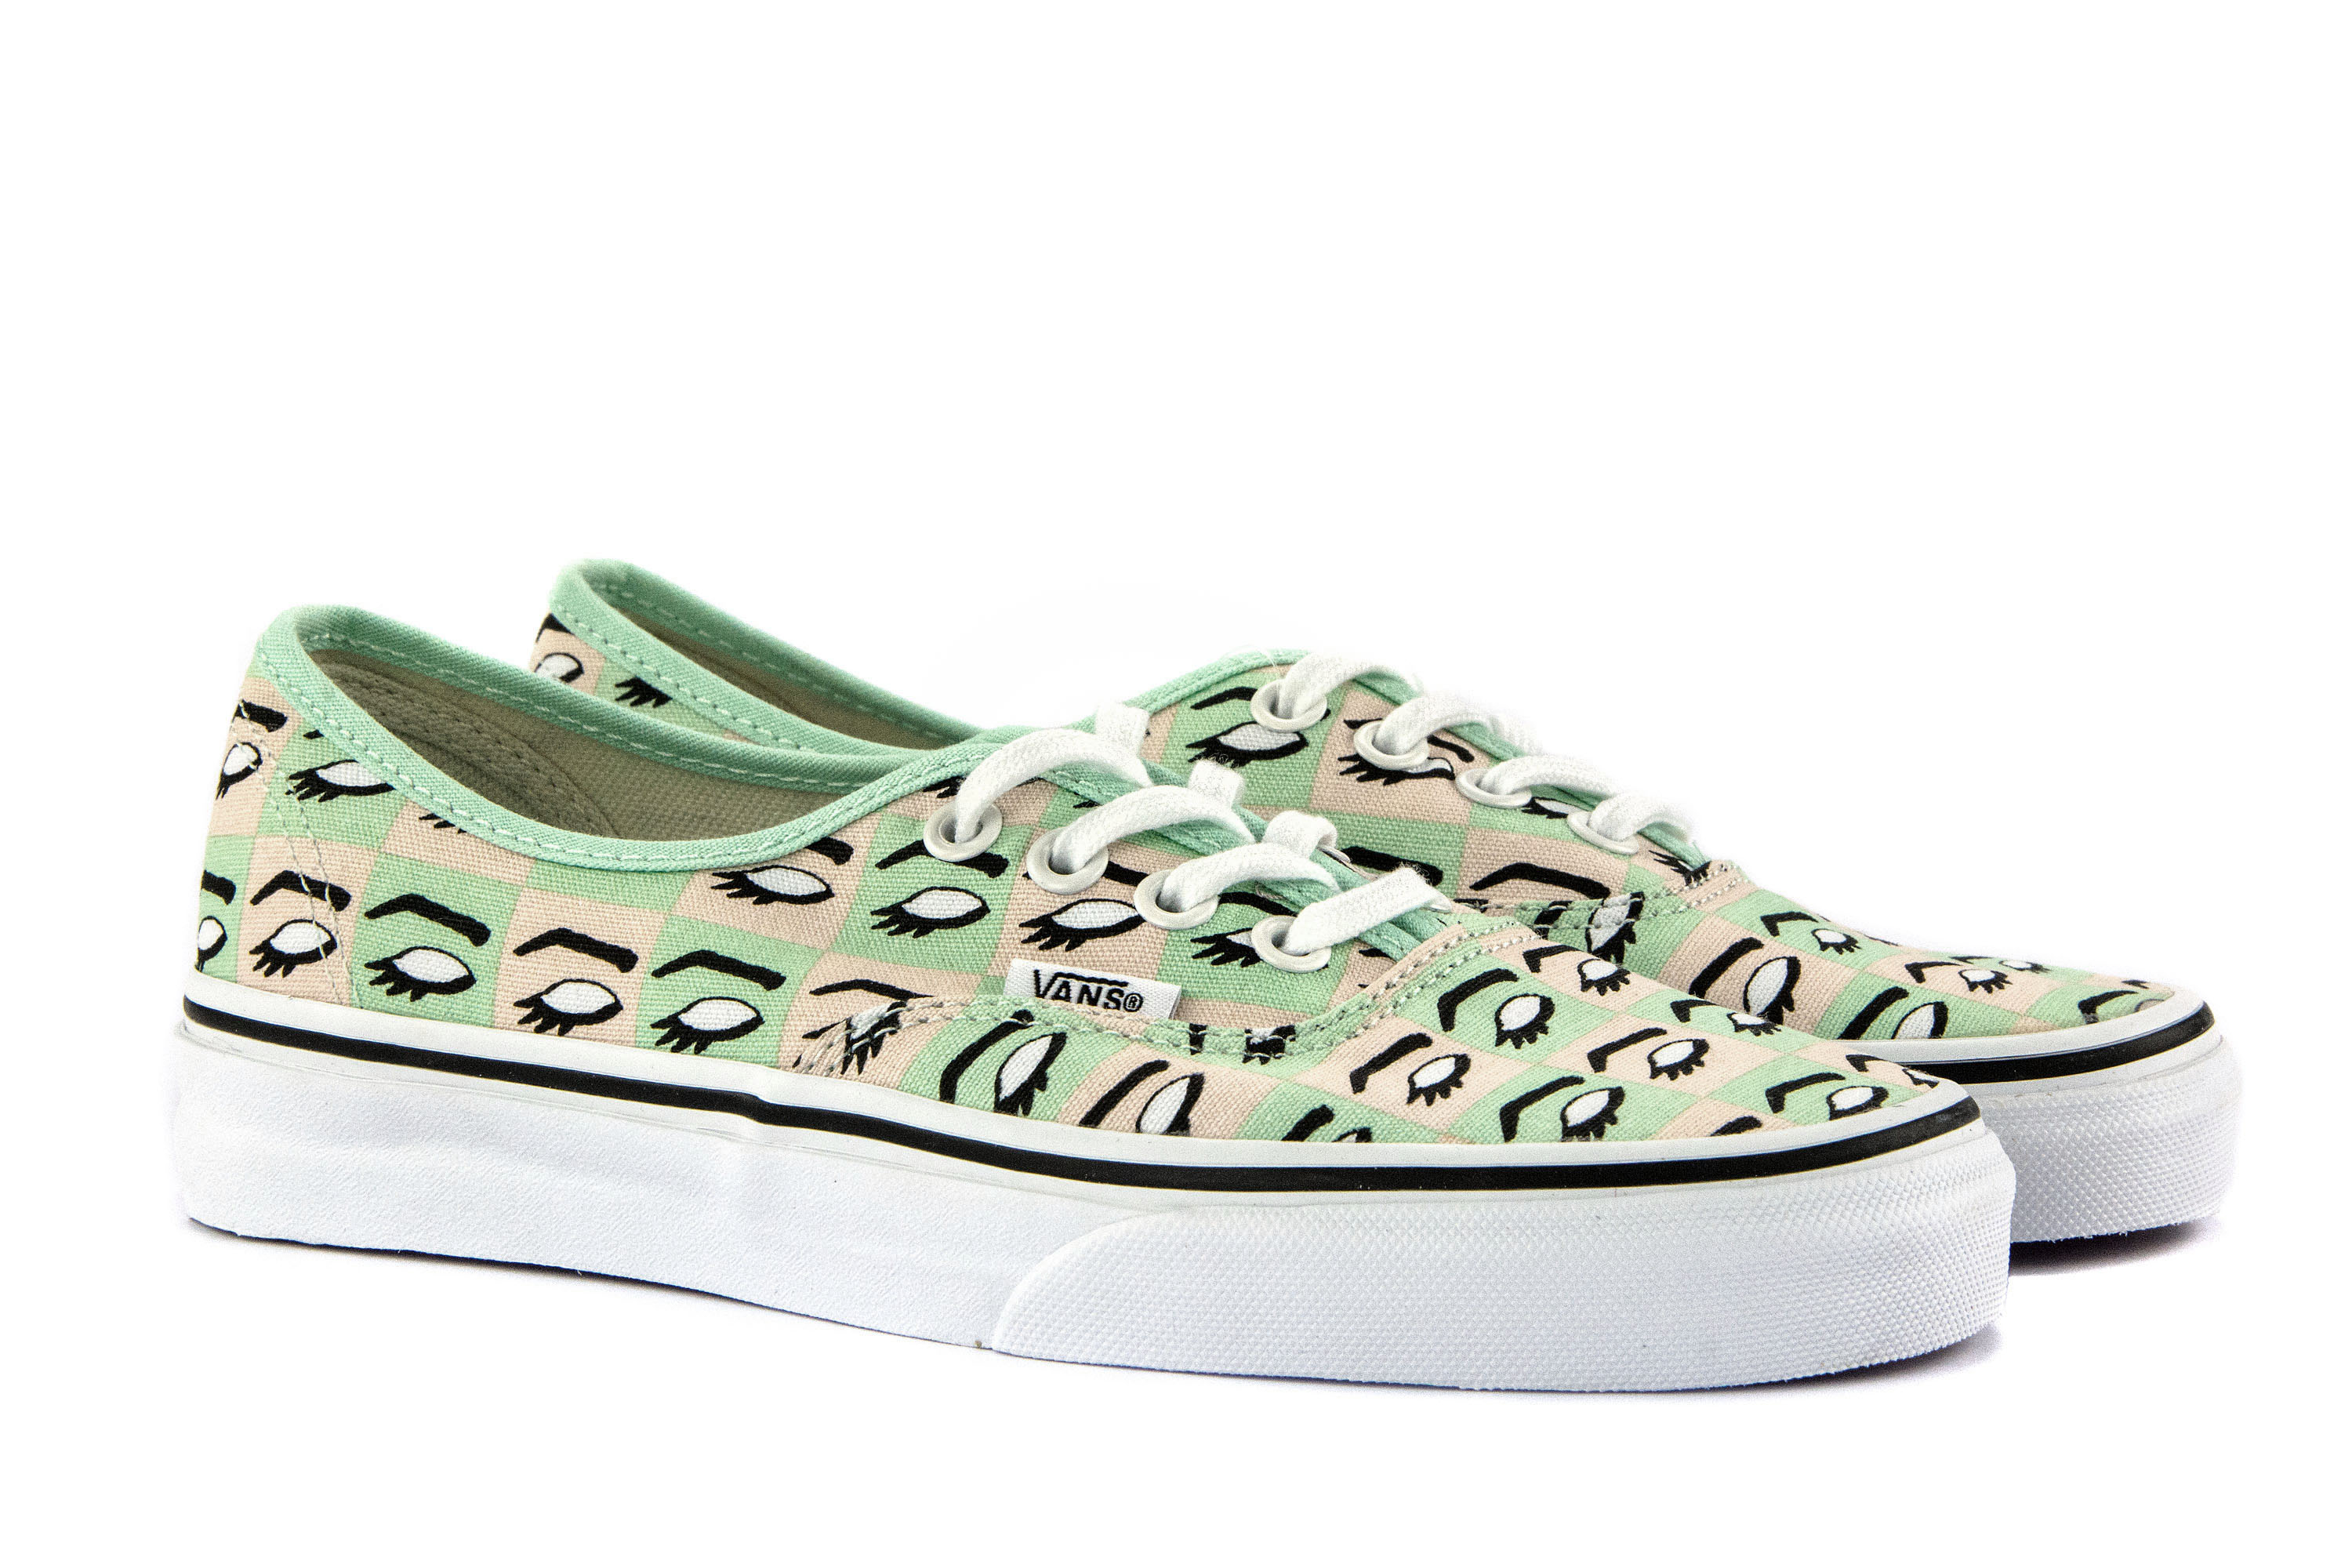 0e53414ad230f1 VANS Womens Shoes Lace-Up Sneakers AUTHENTIC (KENDRA DANDY) White ...